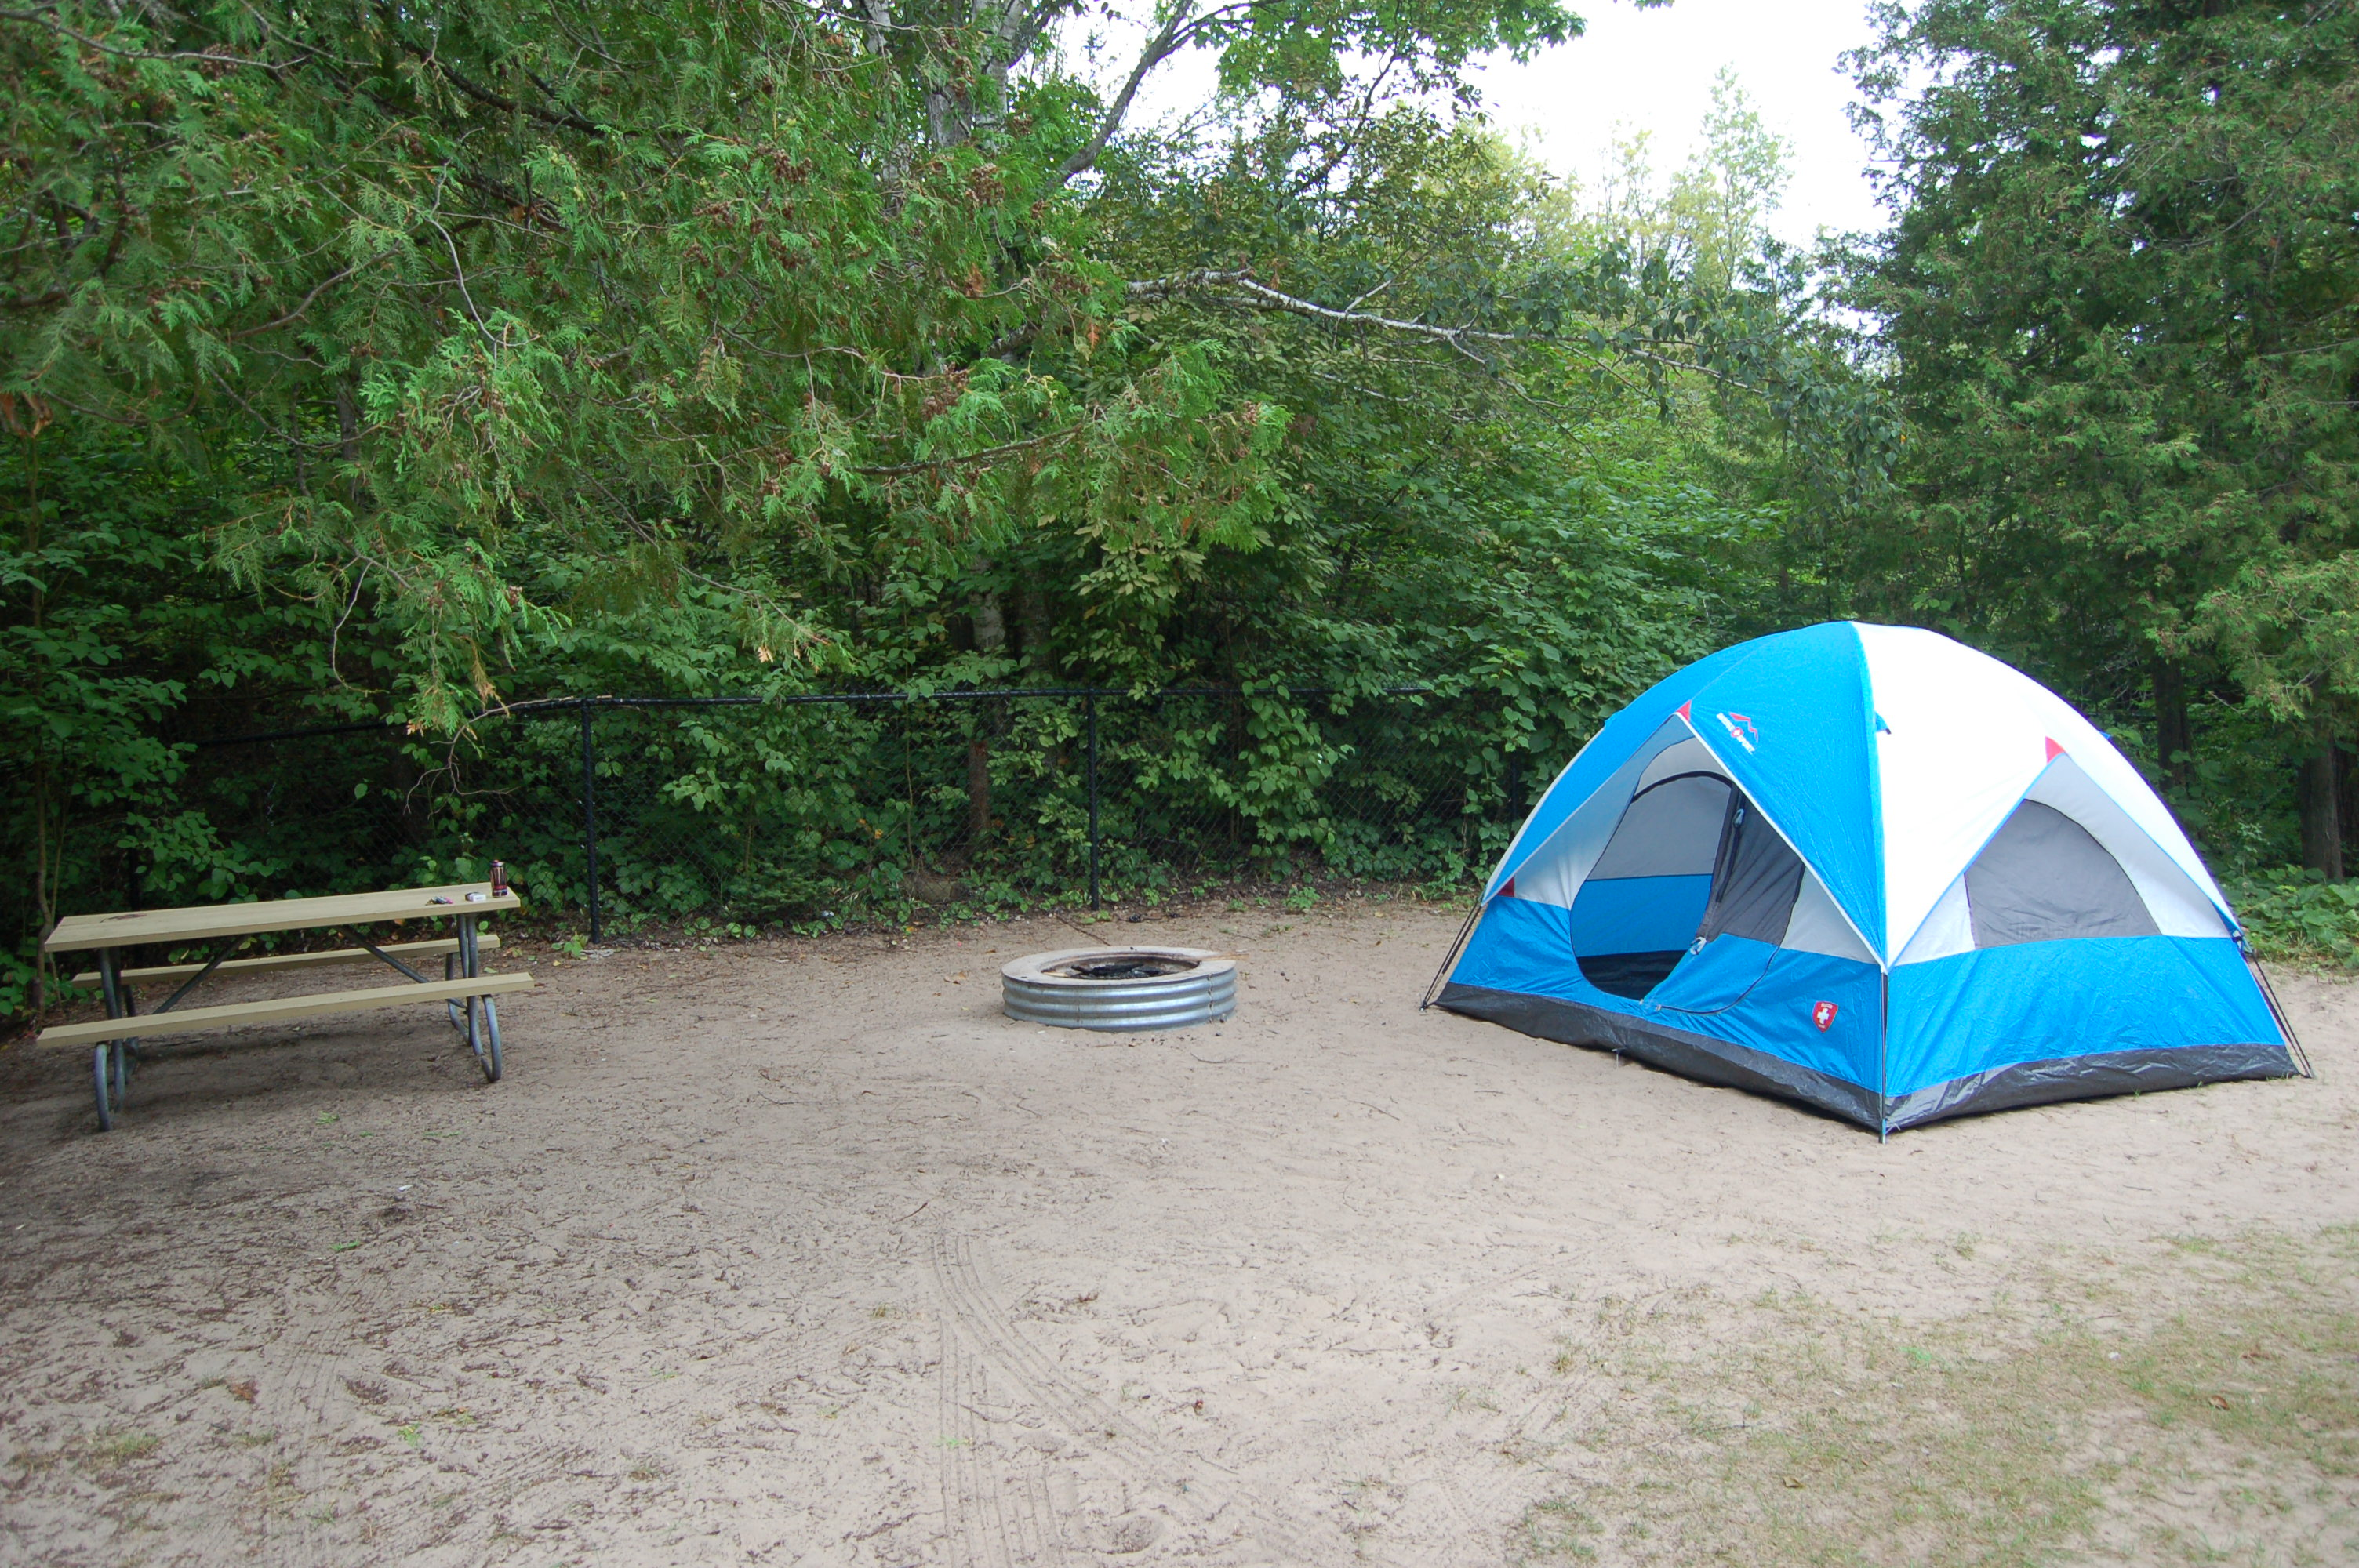 Michigan State Park Camping Fees To Increase In 2015 ...